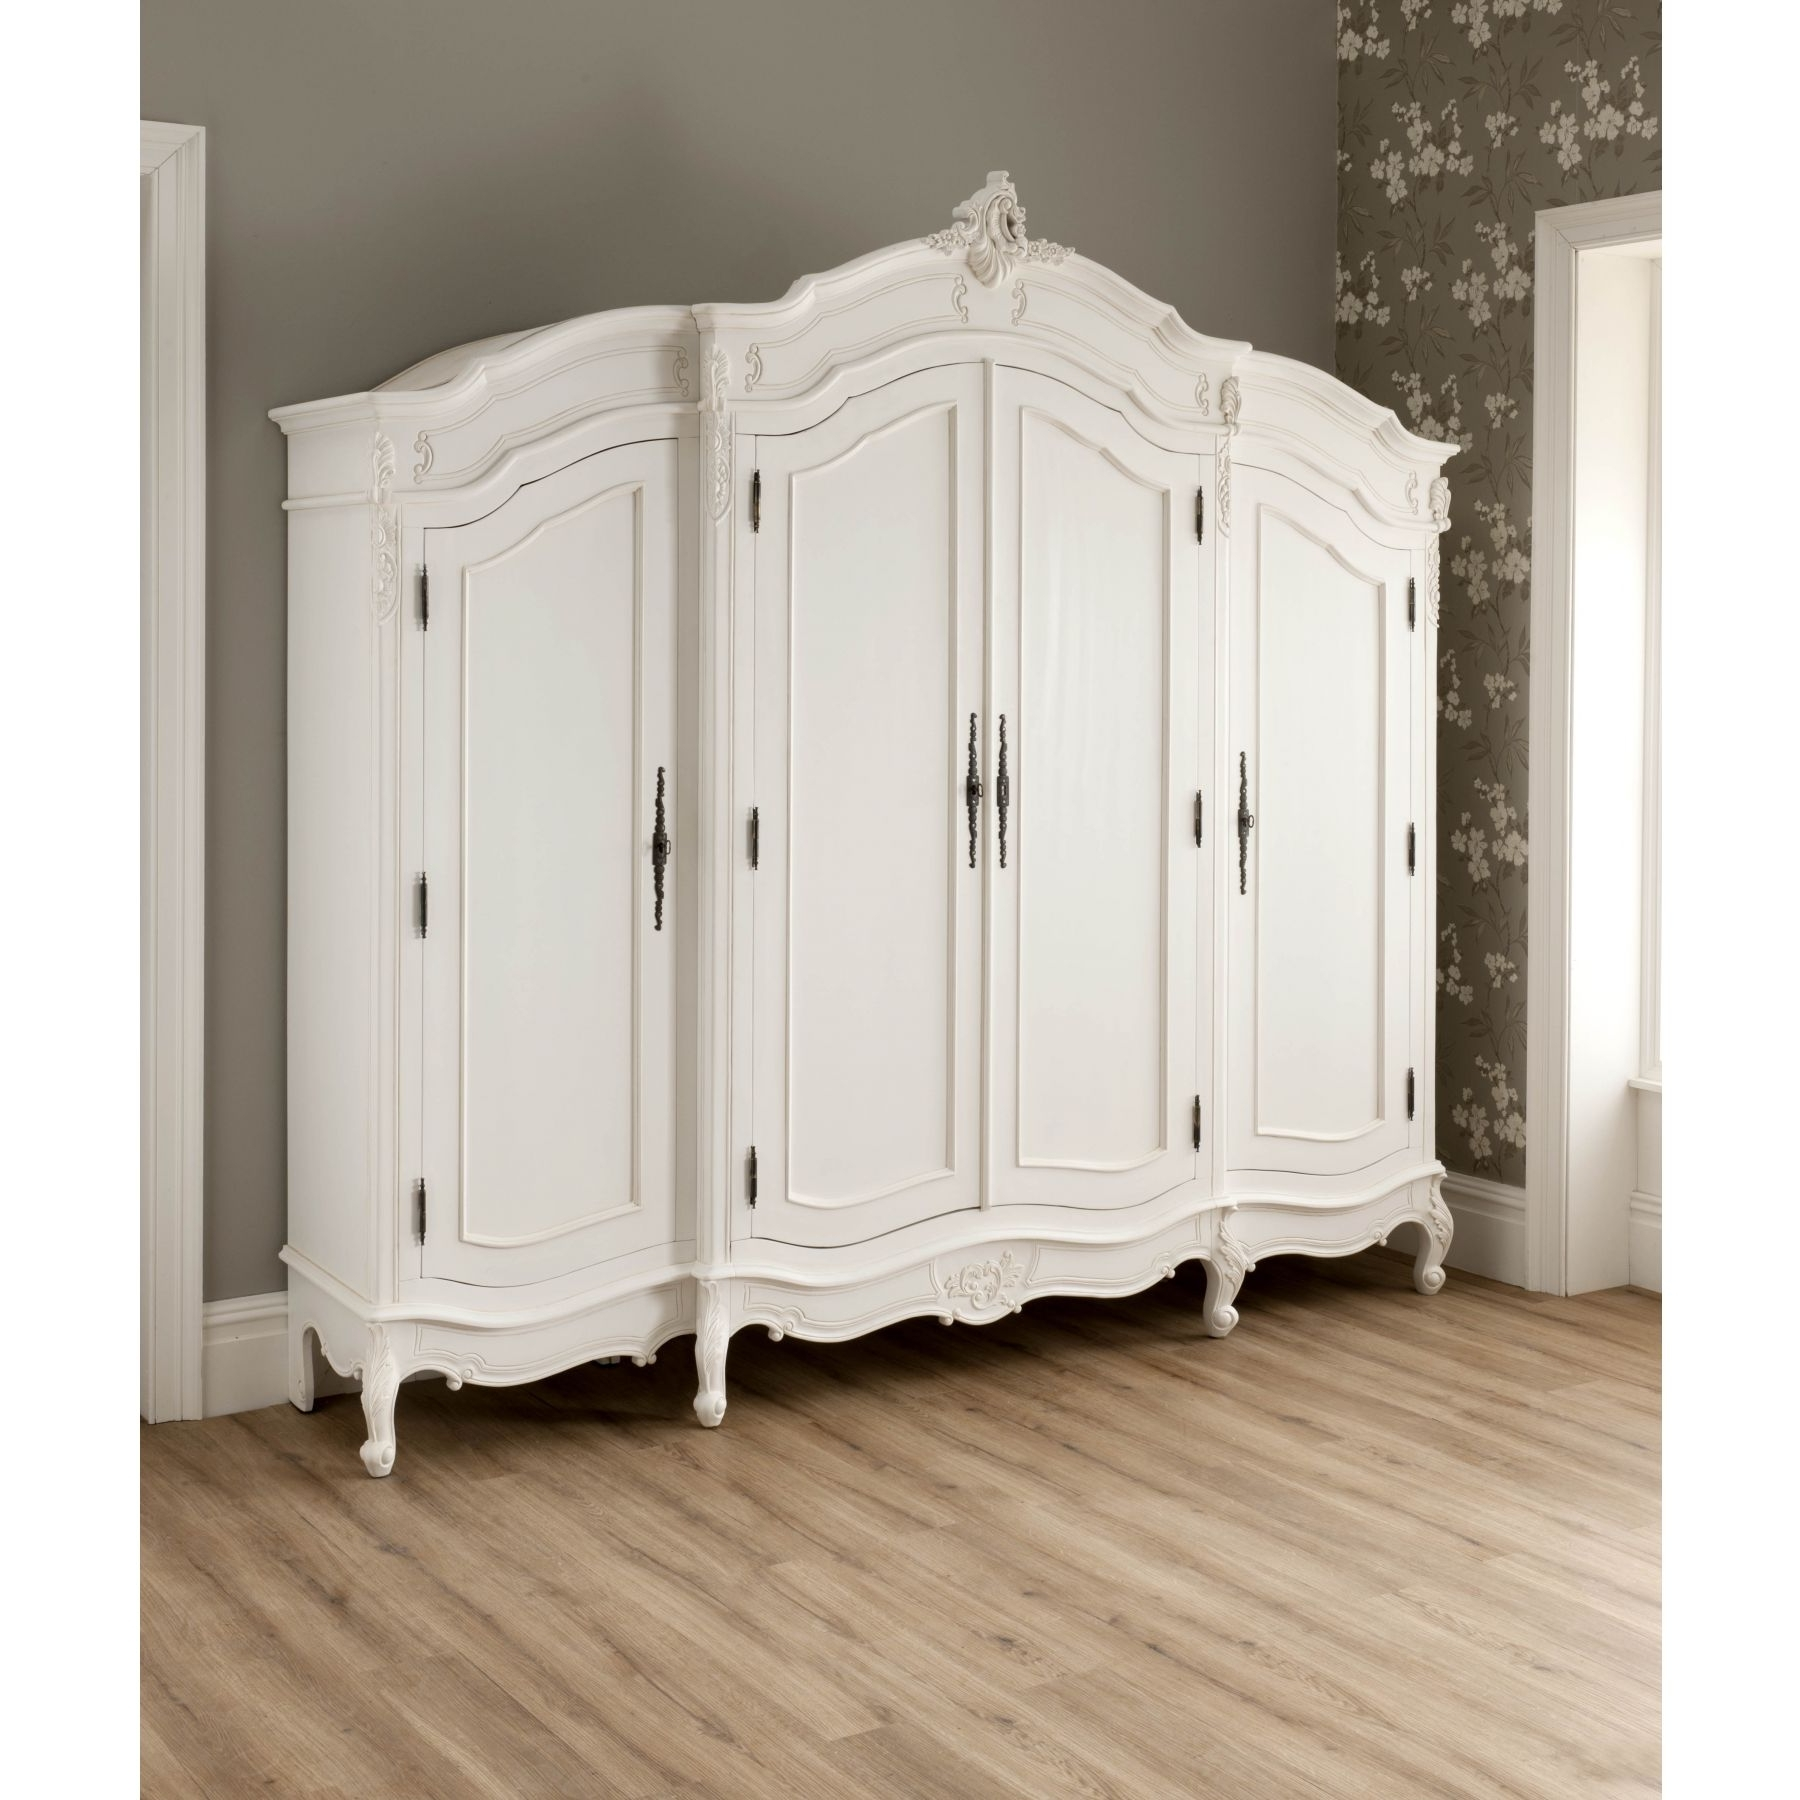 Antique Wardrobes: Vintage French Décor Ideas – Fif Blog Regarding Newest White Vintage Wardrobes (View 8 of 15)